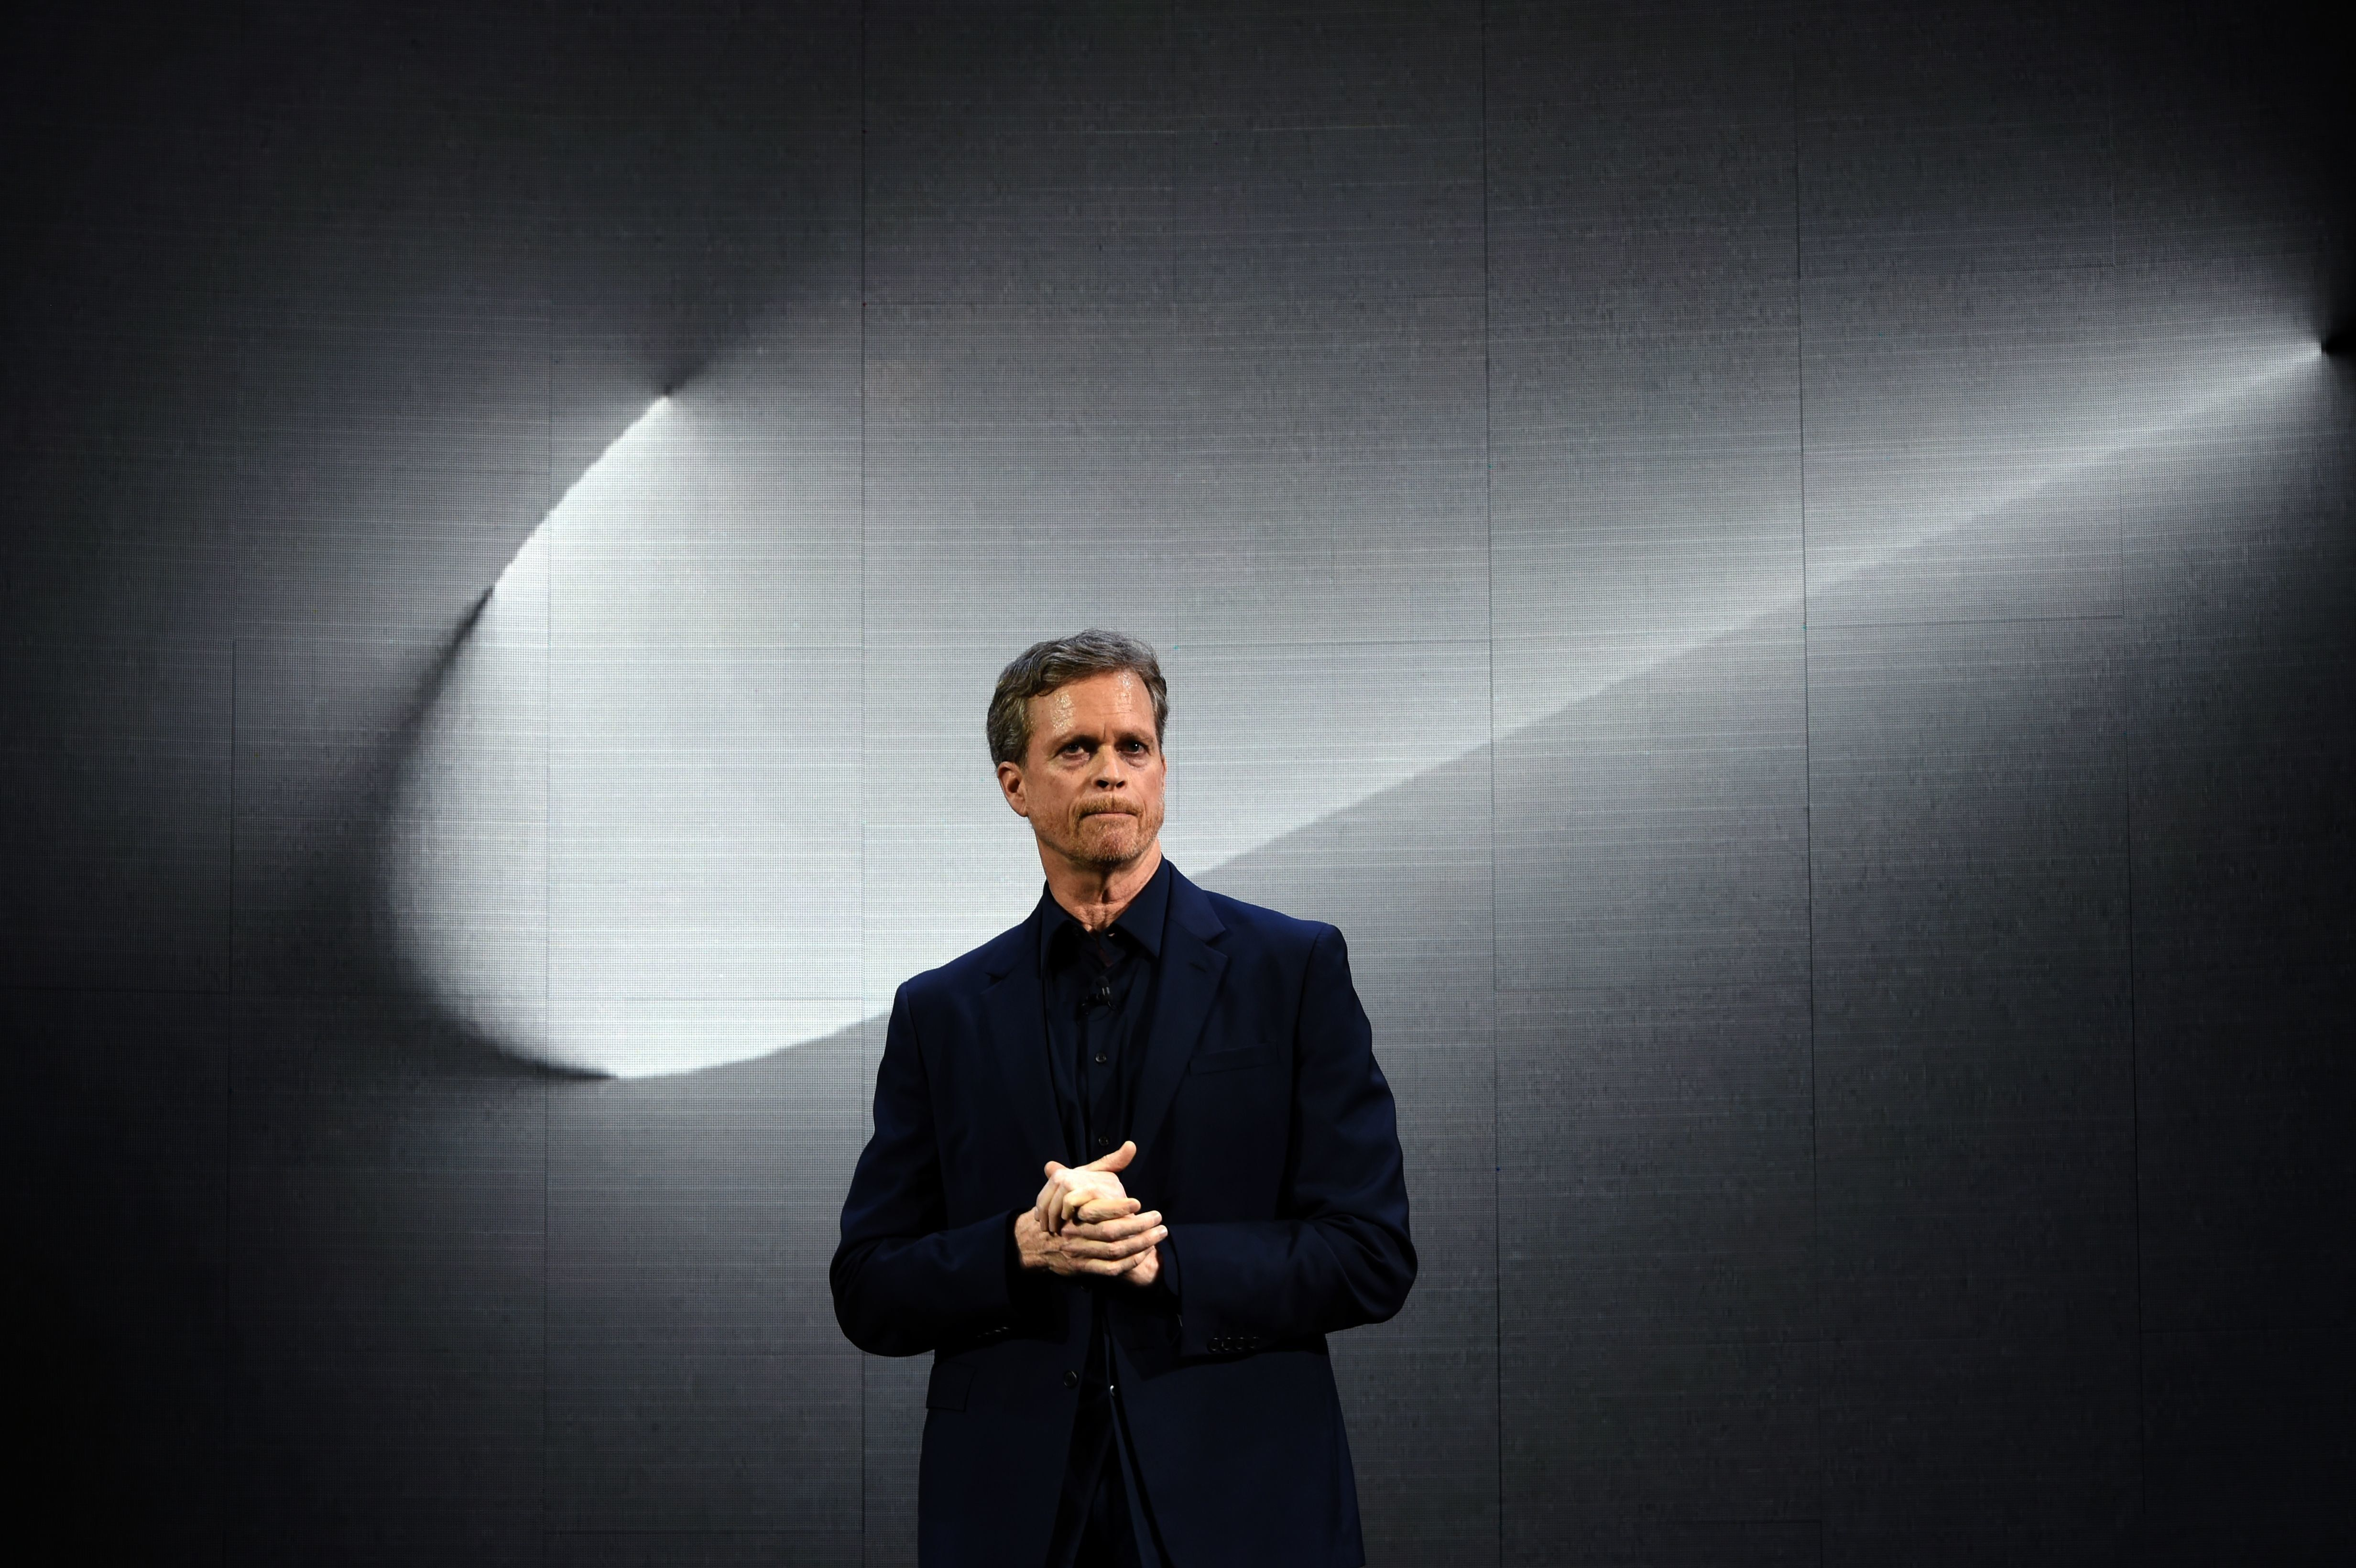 Nike president and CEO Mark Parker reveals their latest innovative sports products during an event in New York on March 16, 2016.  Nike revealed a series of products highlighted by the groundbreaking adaptive lacing platform, as well as a pioneering technology that separates mud from cleats and transformations in the celebrated innovations of Nike Air and Nike Flyknit.  / AFP PHOTO / Jewel SAMAD        (Photo credit should read JEWEL SAMAD/AFP/Getty Images)